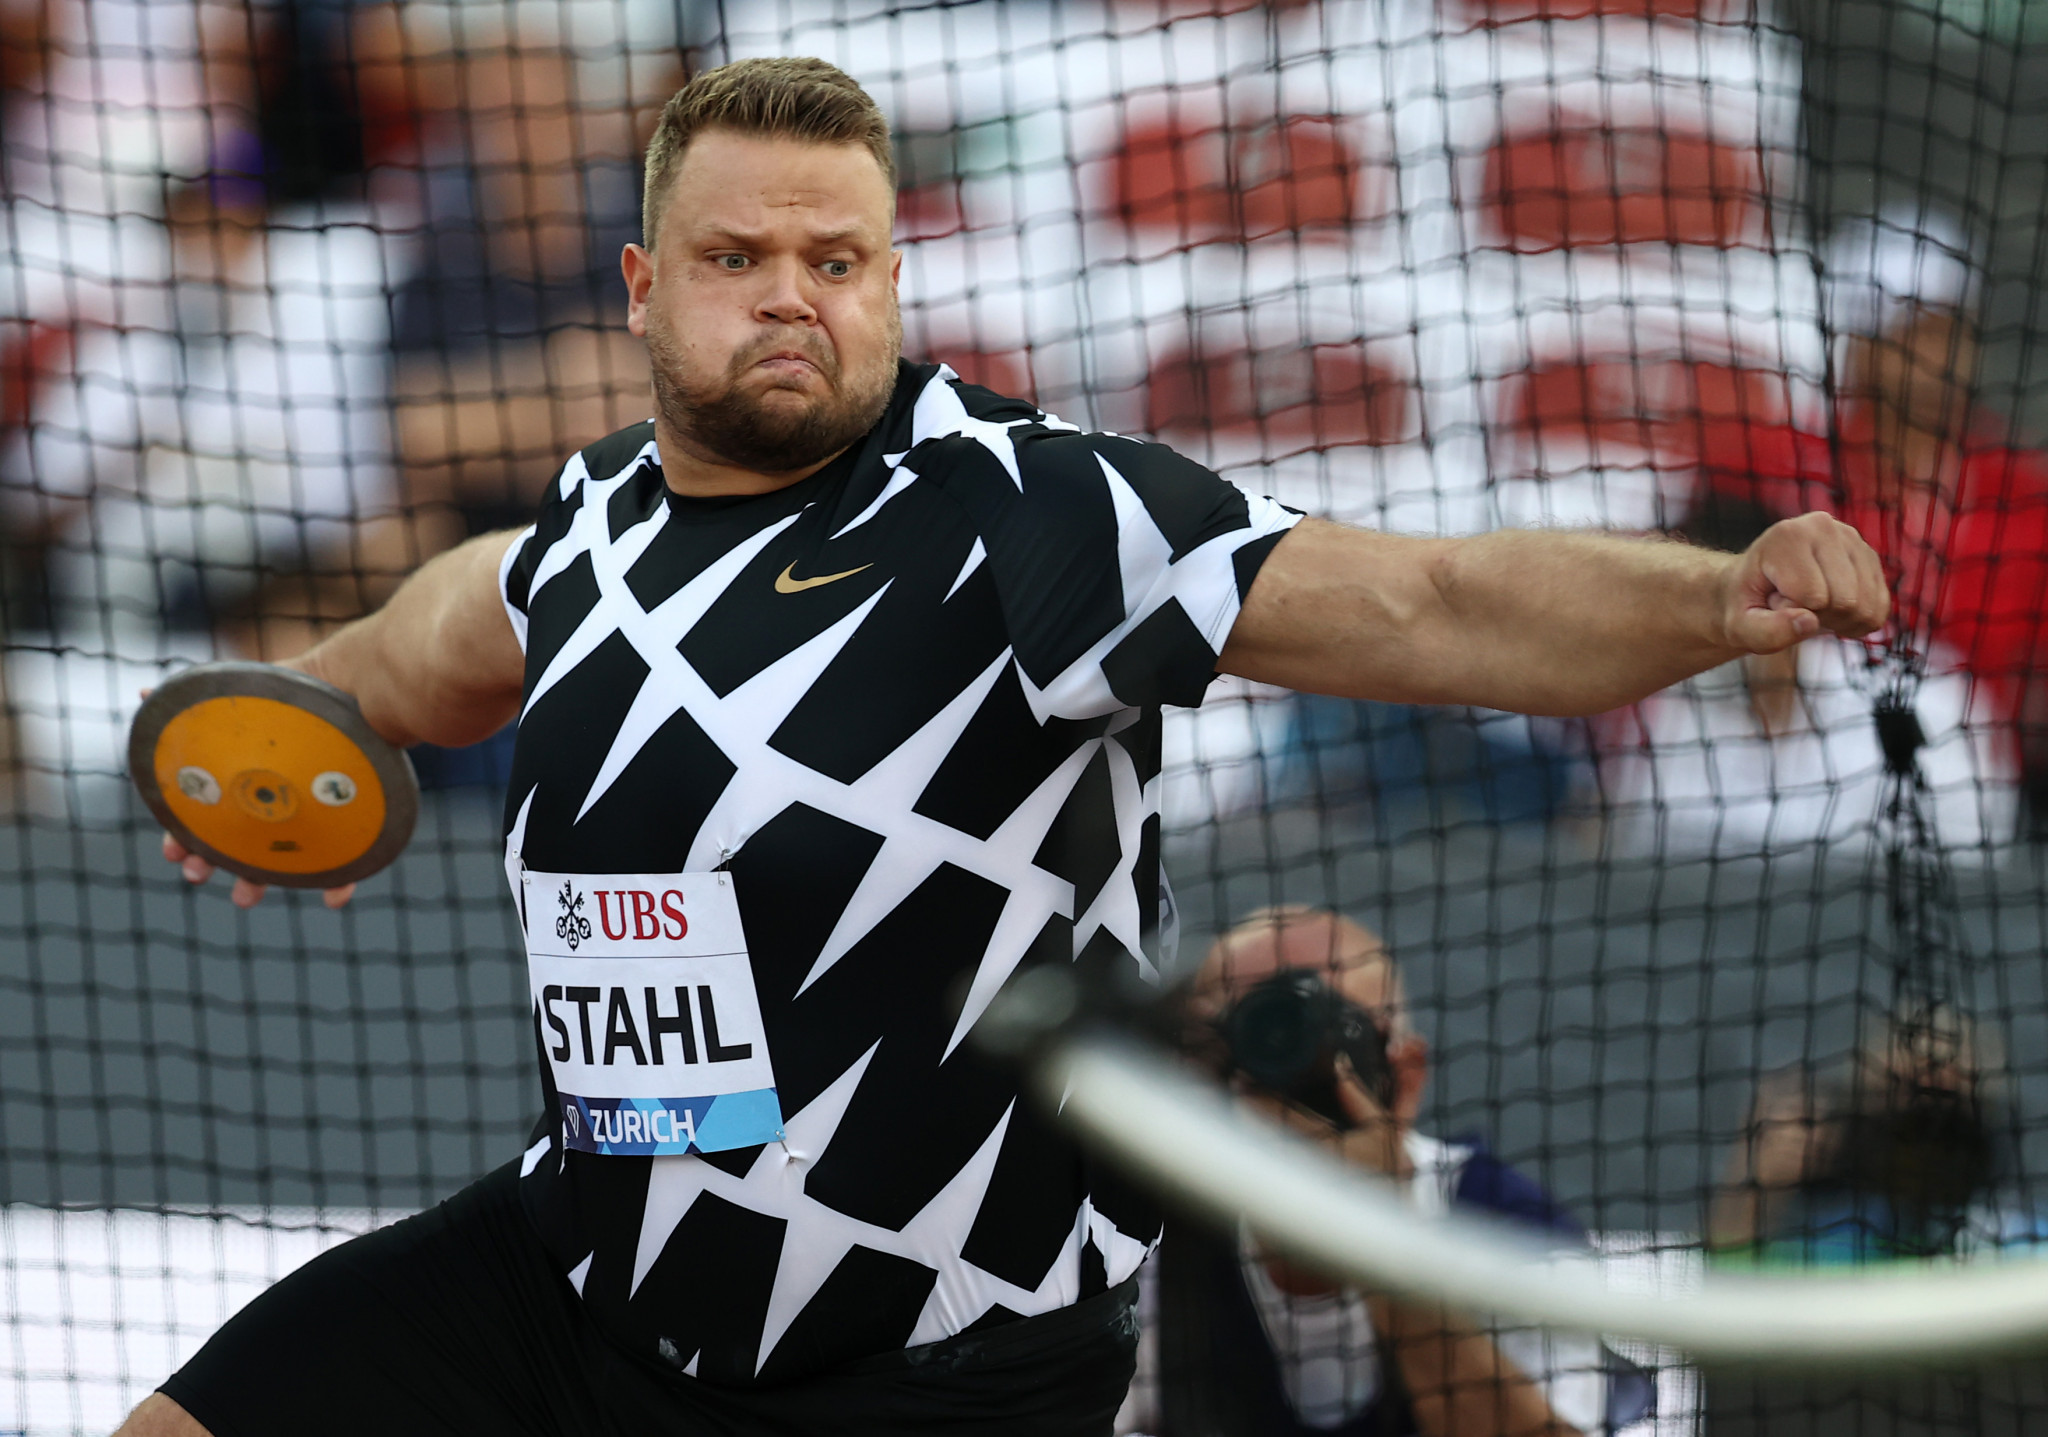 Olympic champion Daniel Ståhl triumphed in the men's discus in Zagreb, throwing 67.79m ©Getty Images